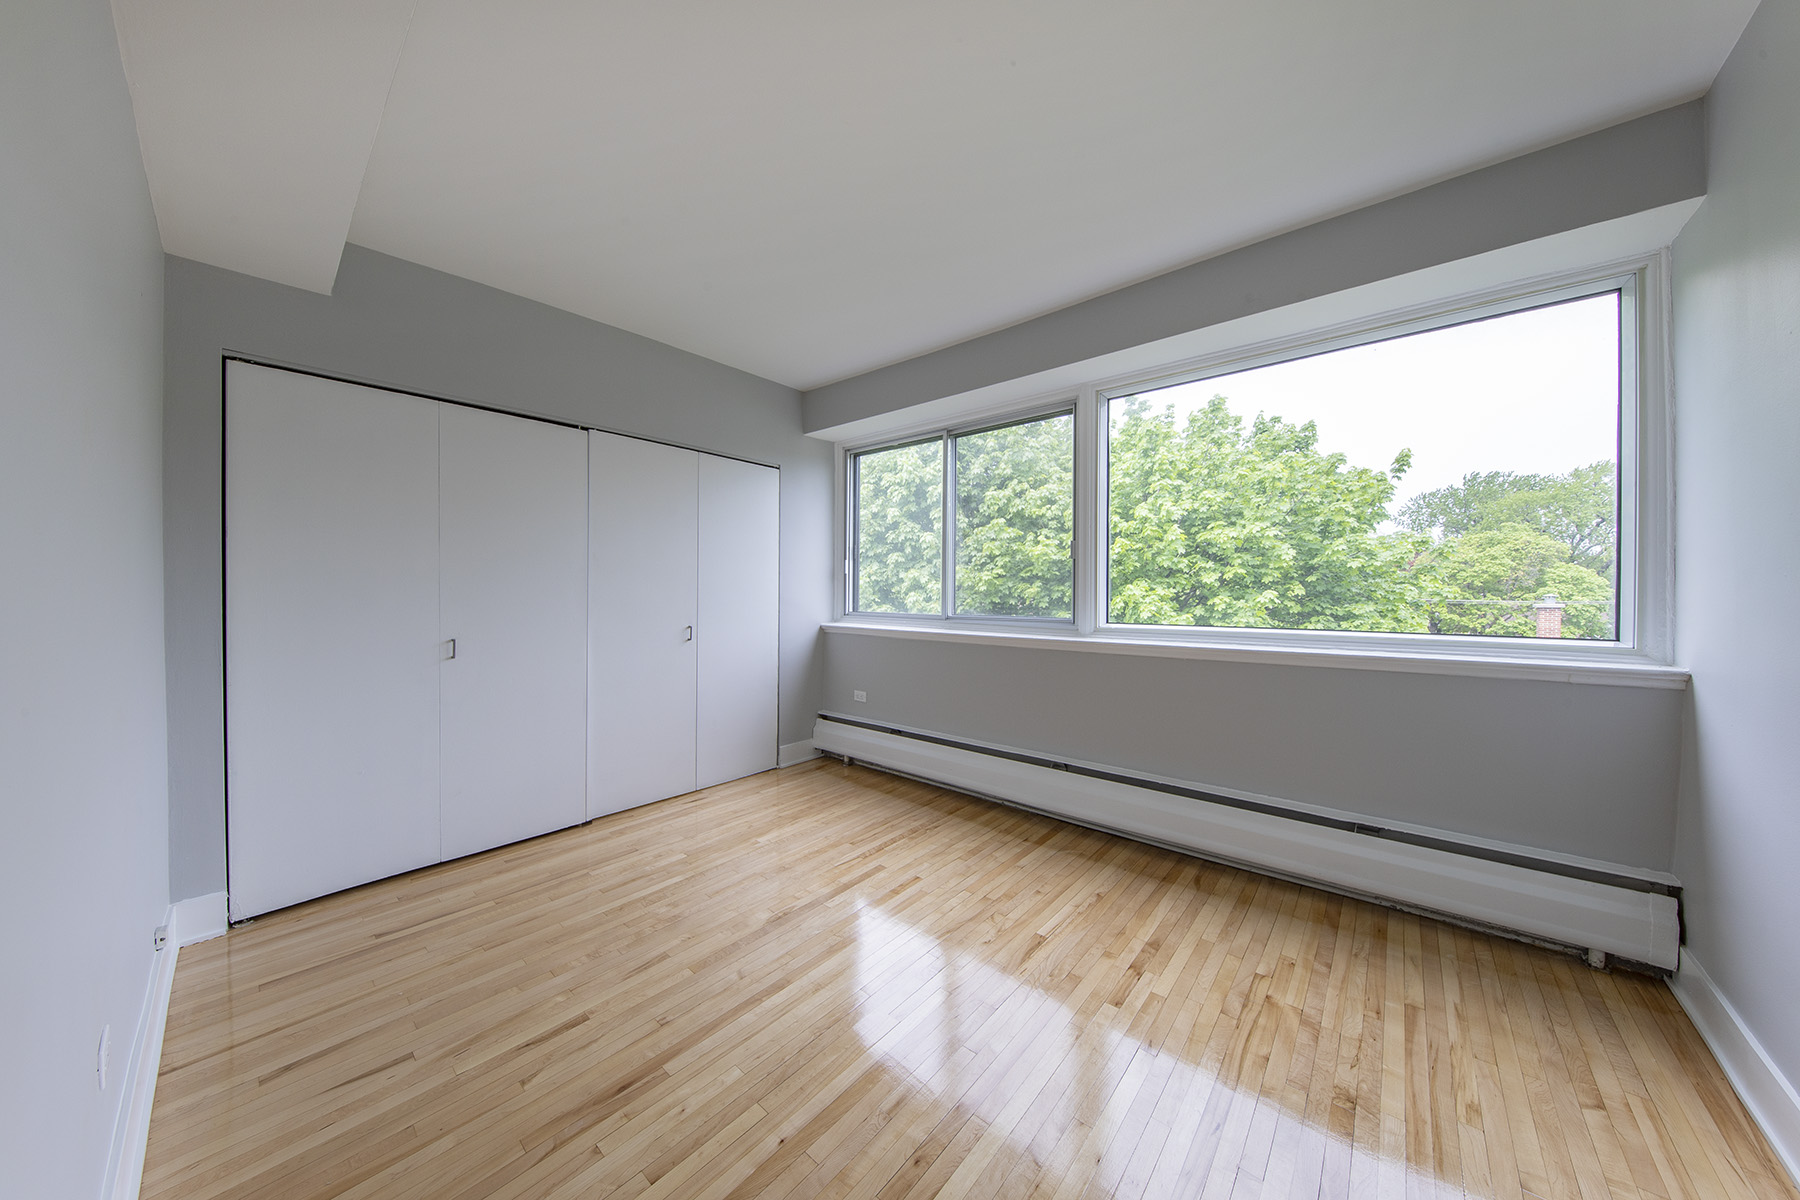 2 bedroom Apartments for rent in Cote-St-Luc at 5765 Cote St-Luc - Photo 04 - RentQuebecApartments – L401533